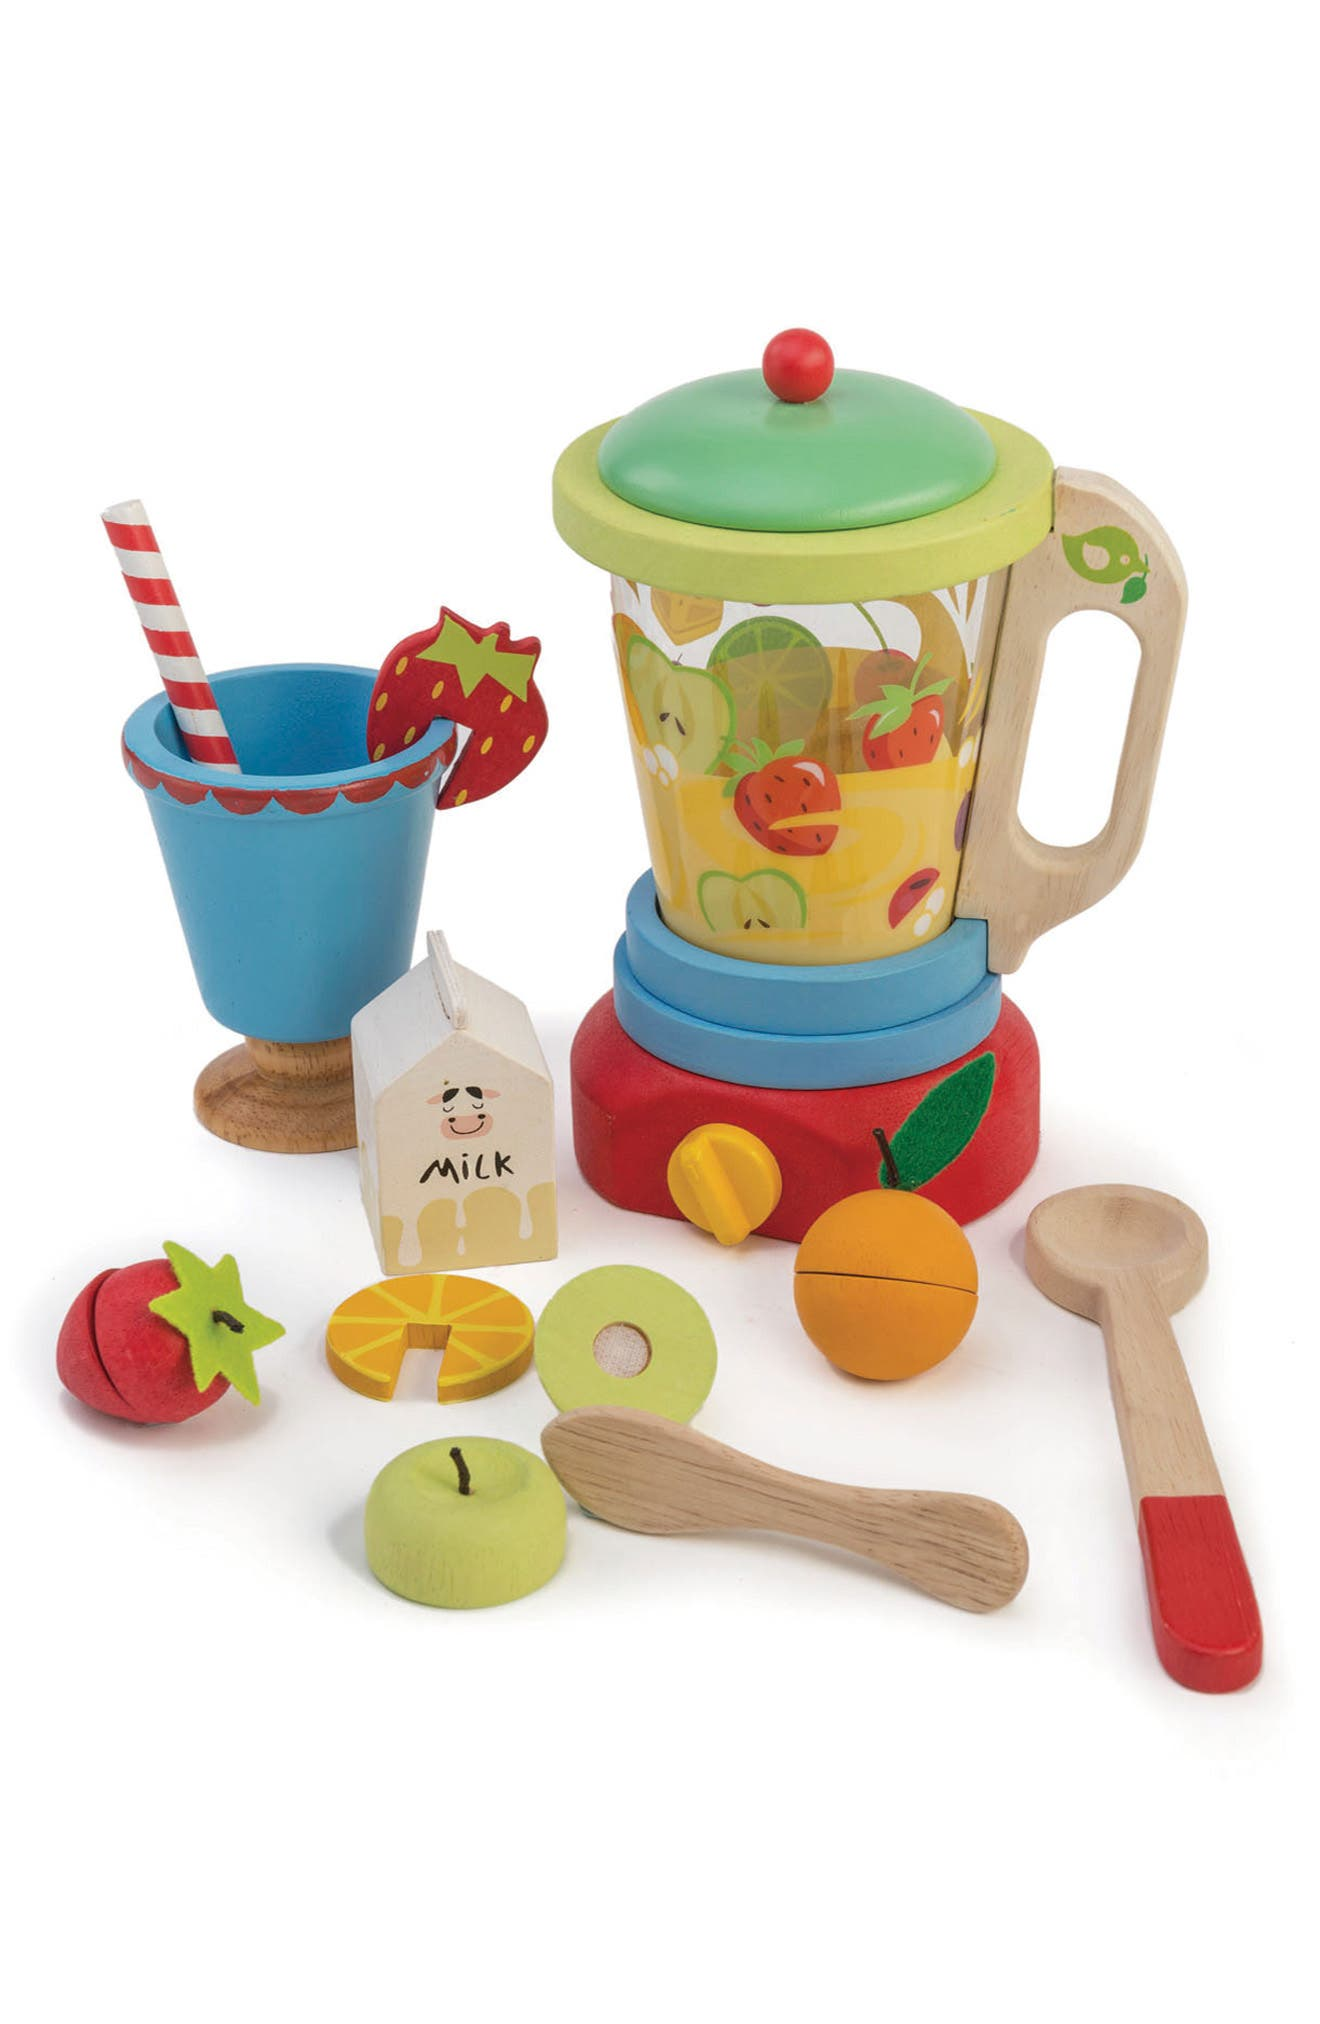 A bright, cheery smoothie maker toy set lets little ones pretend to recreate their favorites. Style Name: Tender Leaf Toys Smoothie Maker Toy. Style Number: 5940634. Available in stores.